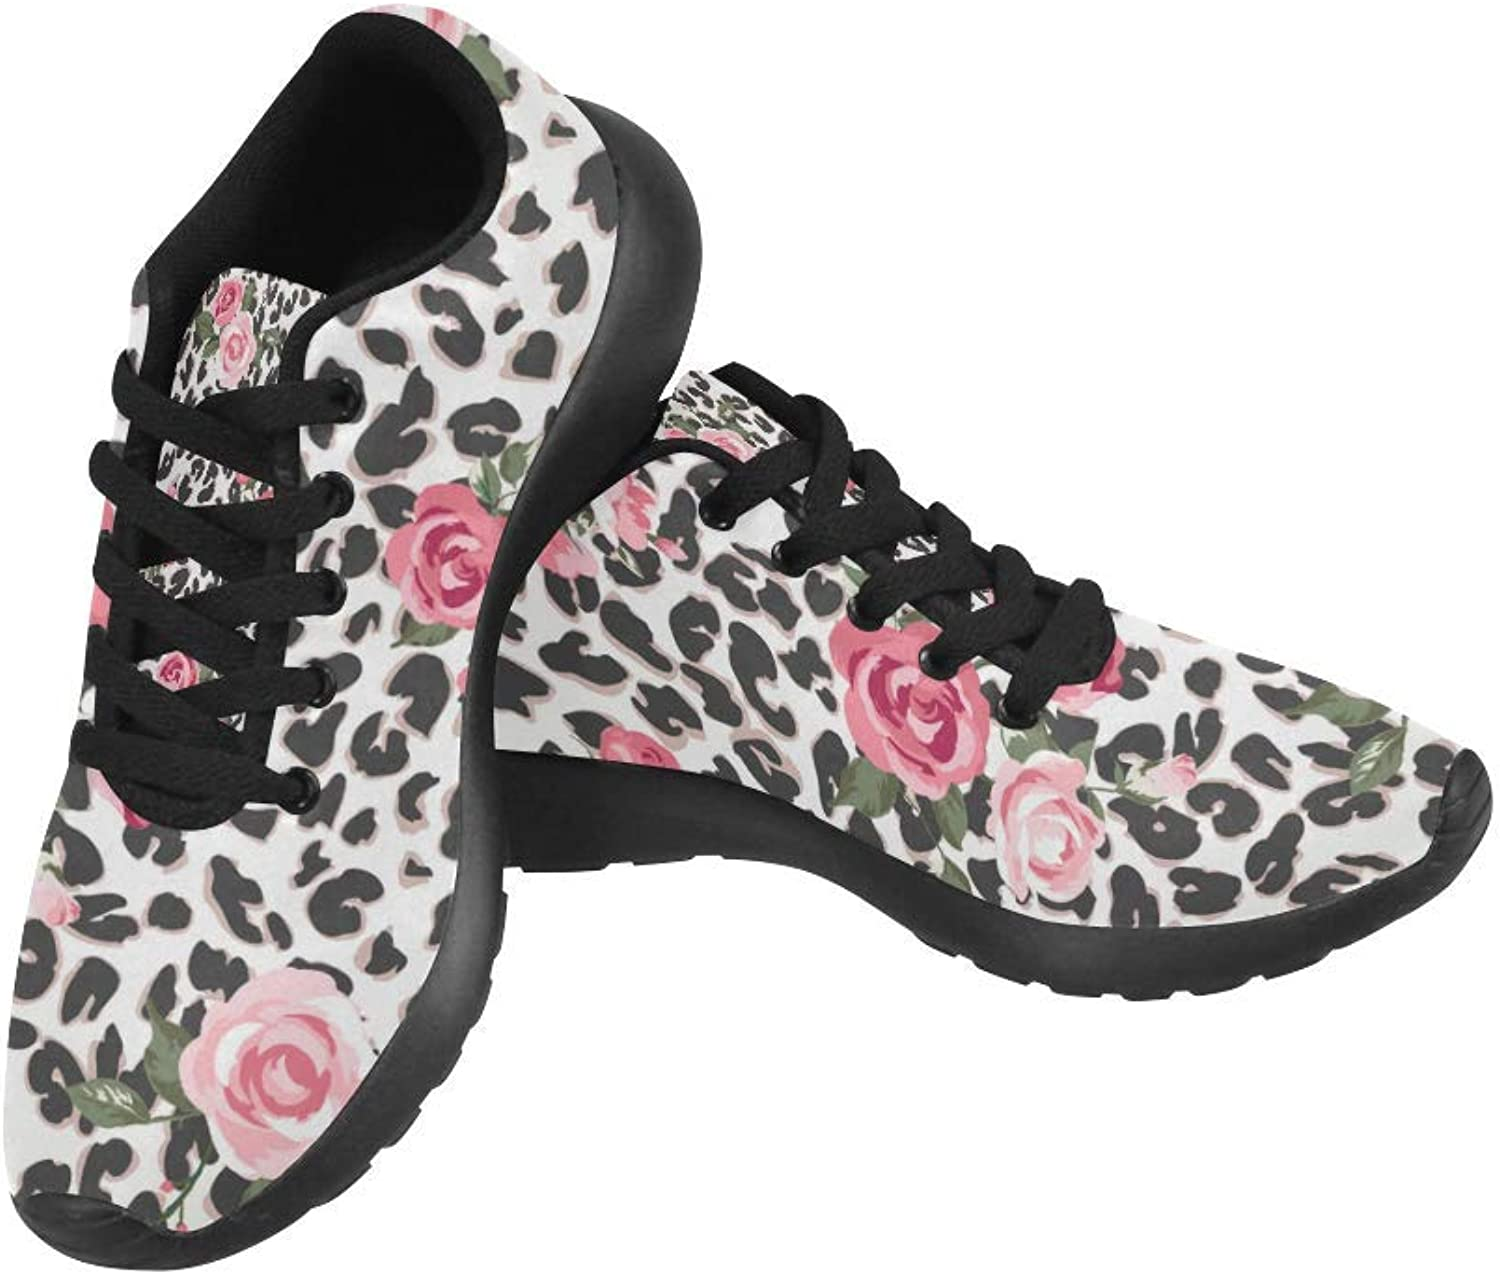 InterestPrint Cute pink Mix Leopard Pattern Print on Women's Running shoes Casual Lightweight Athletic Sneakers US Size 6-15